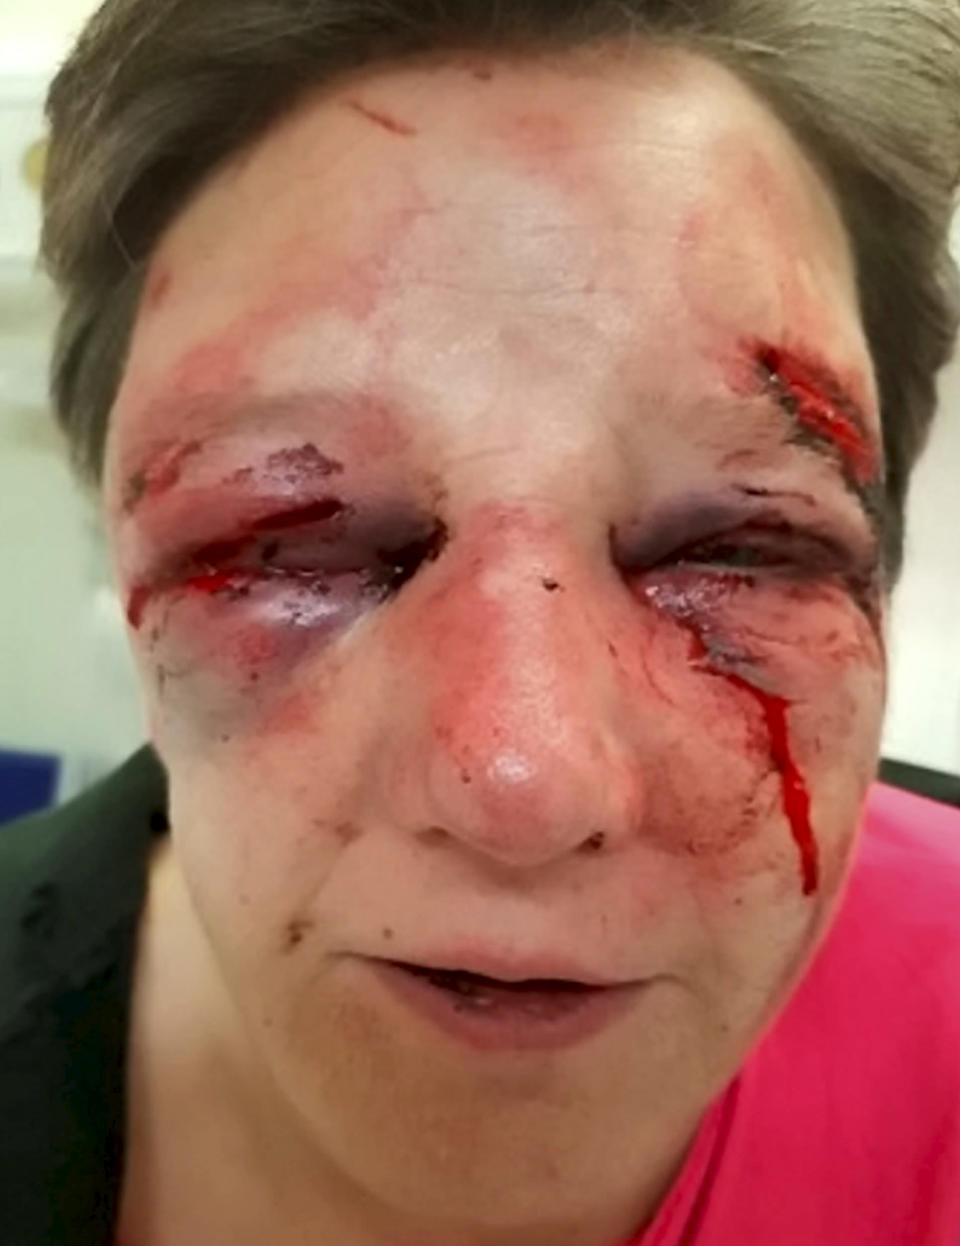 '<em>Viciously attacked' – police said it will take the woman a considerable amount of time to recover (Picture: SWNS)</em>